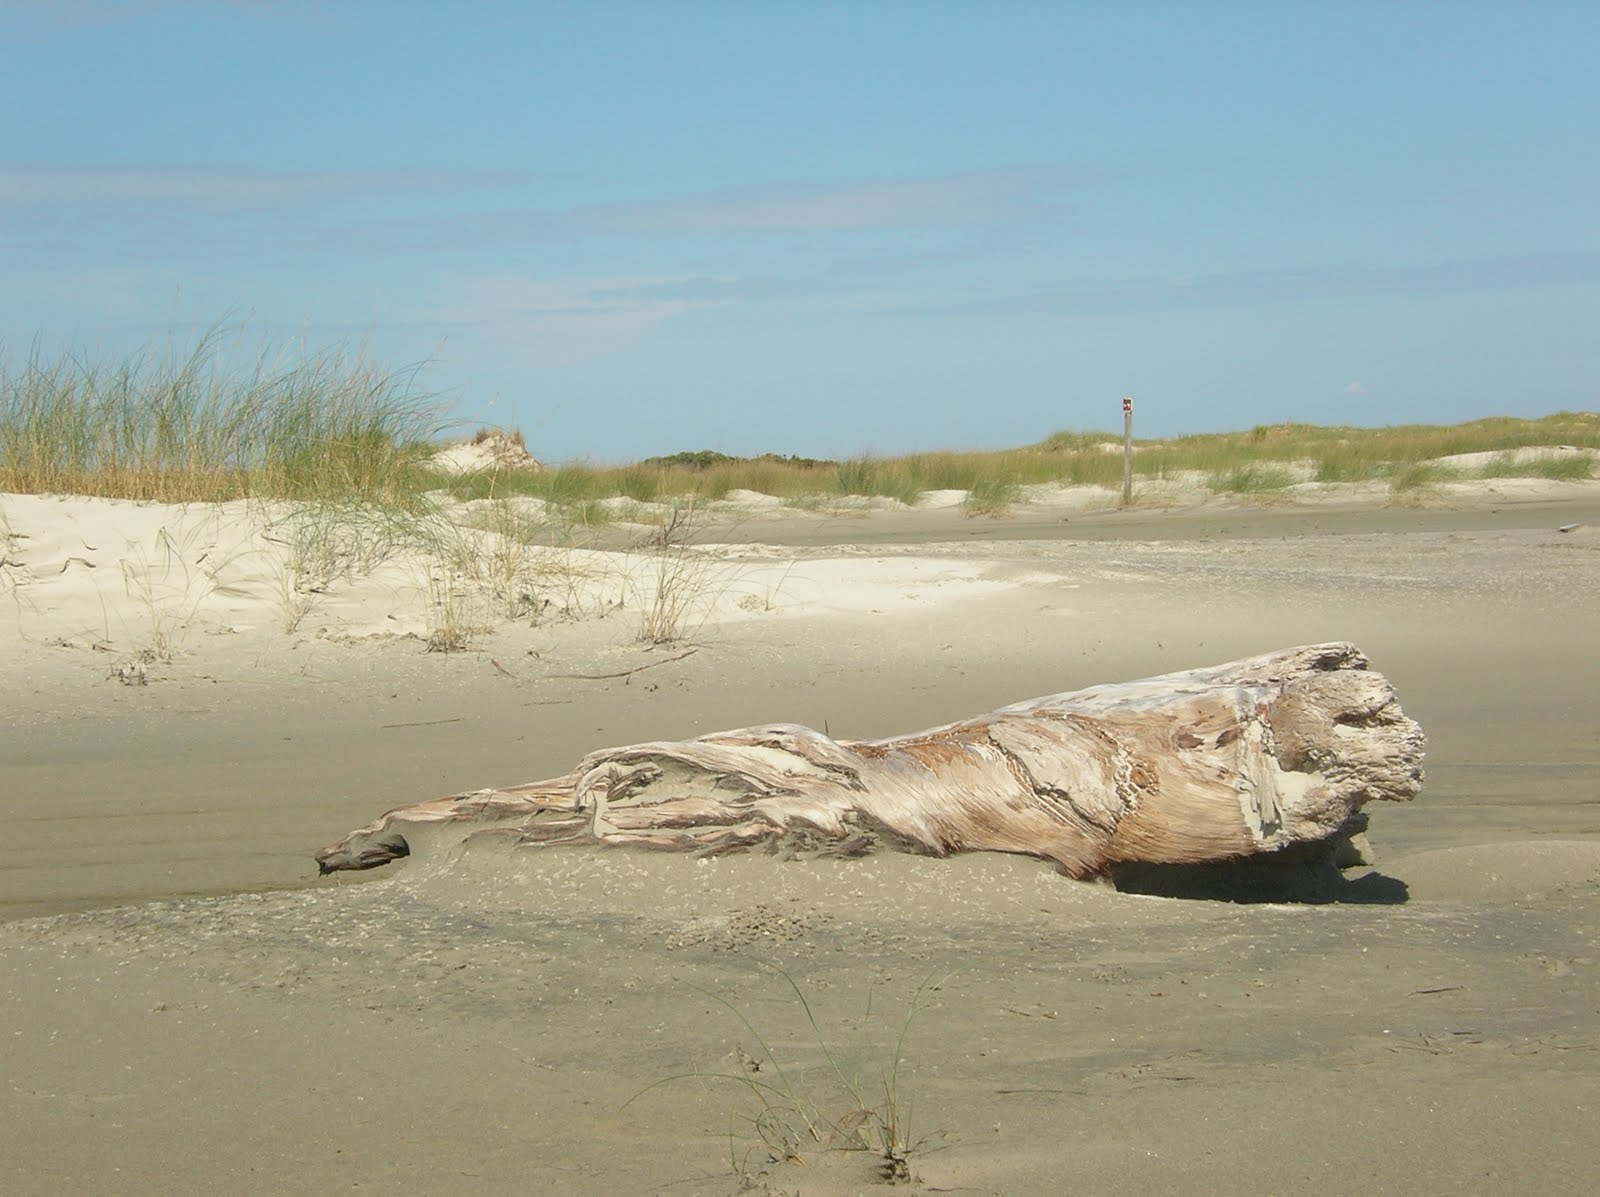 sandy beach, grass, driftwood